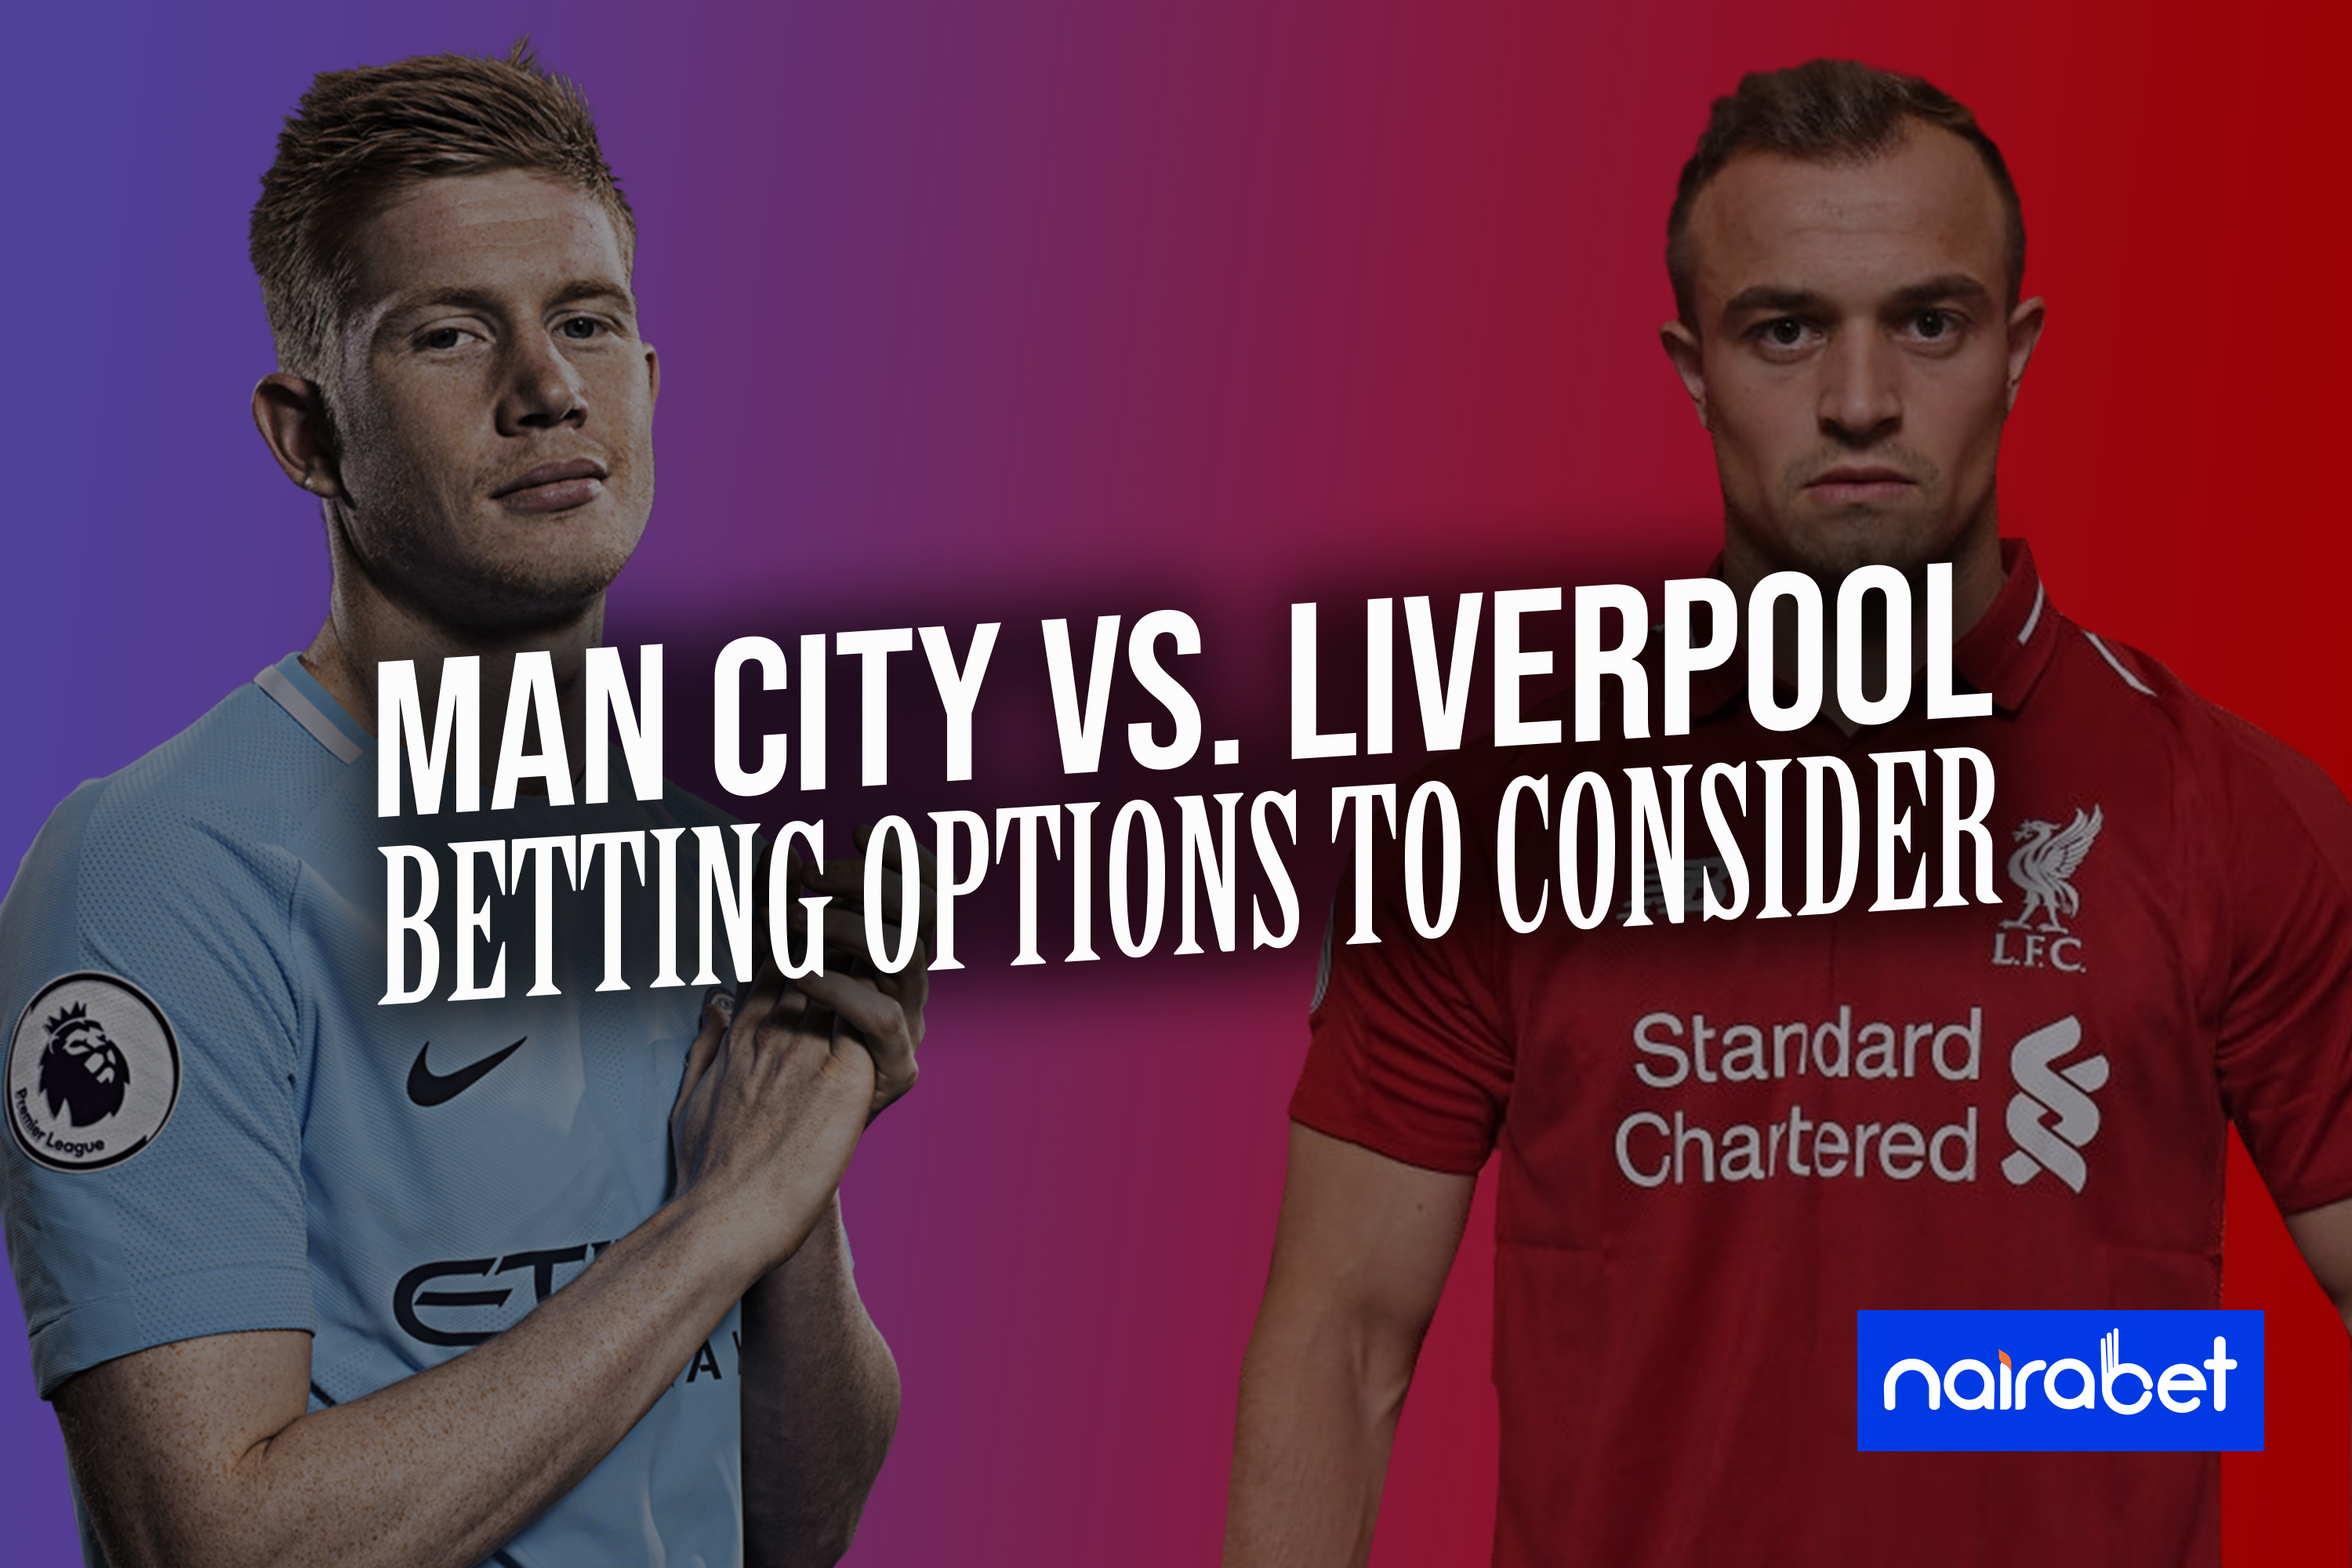 man city vs liverpool; betting options